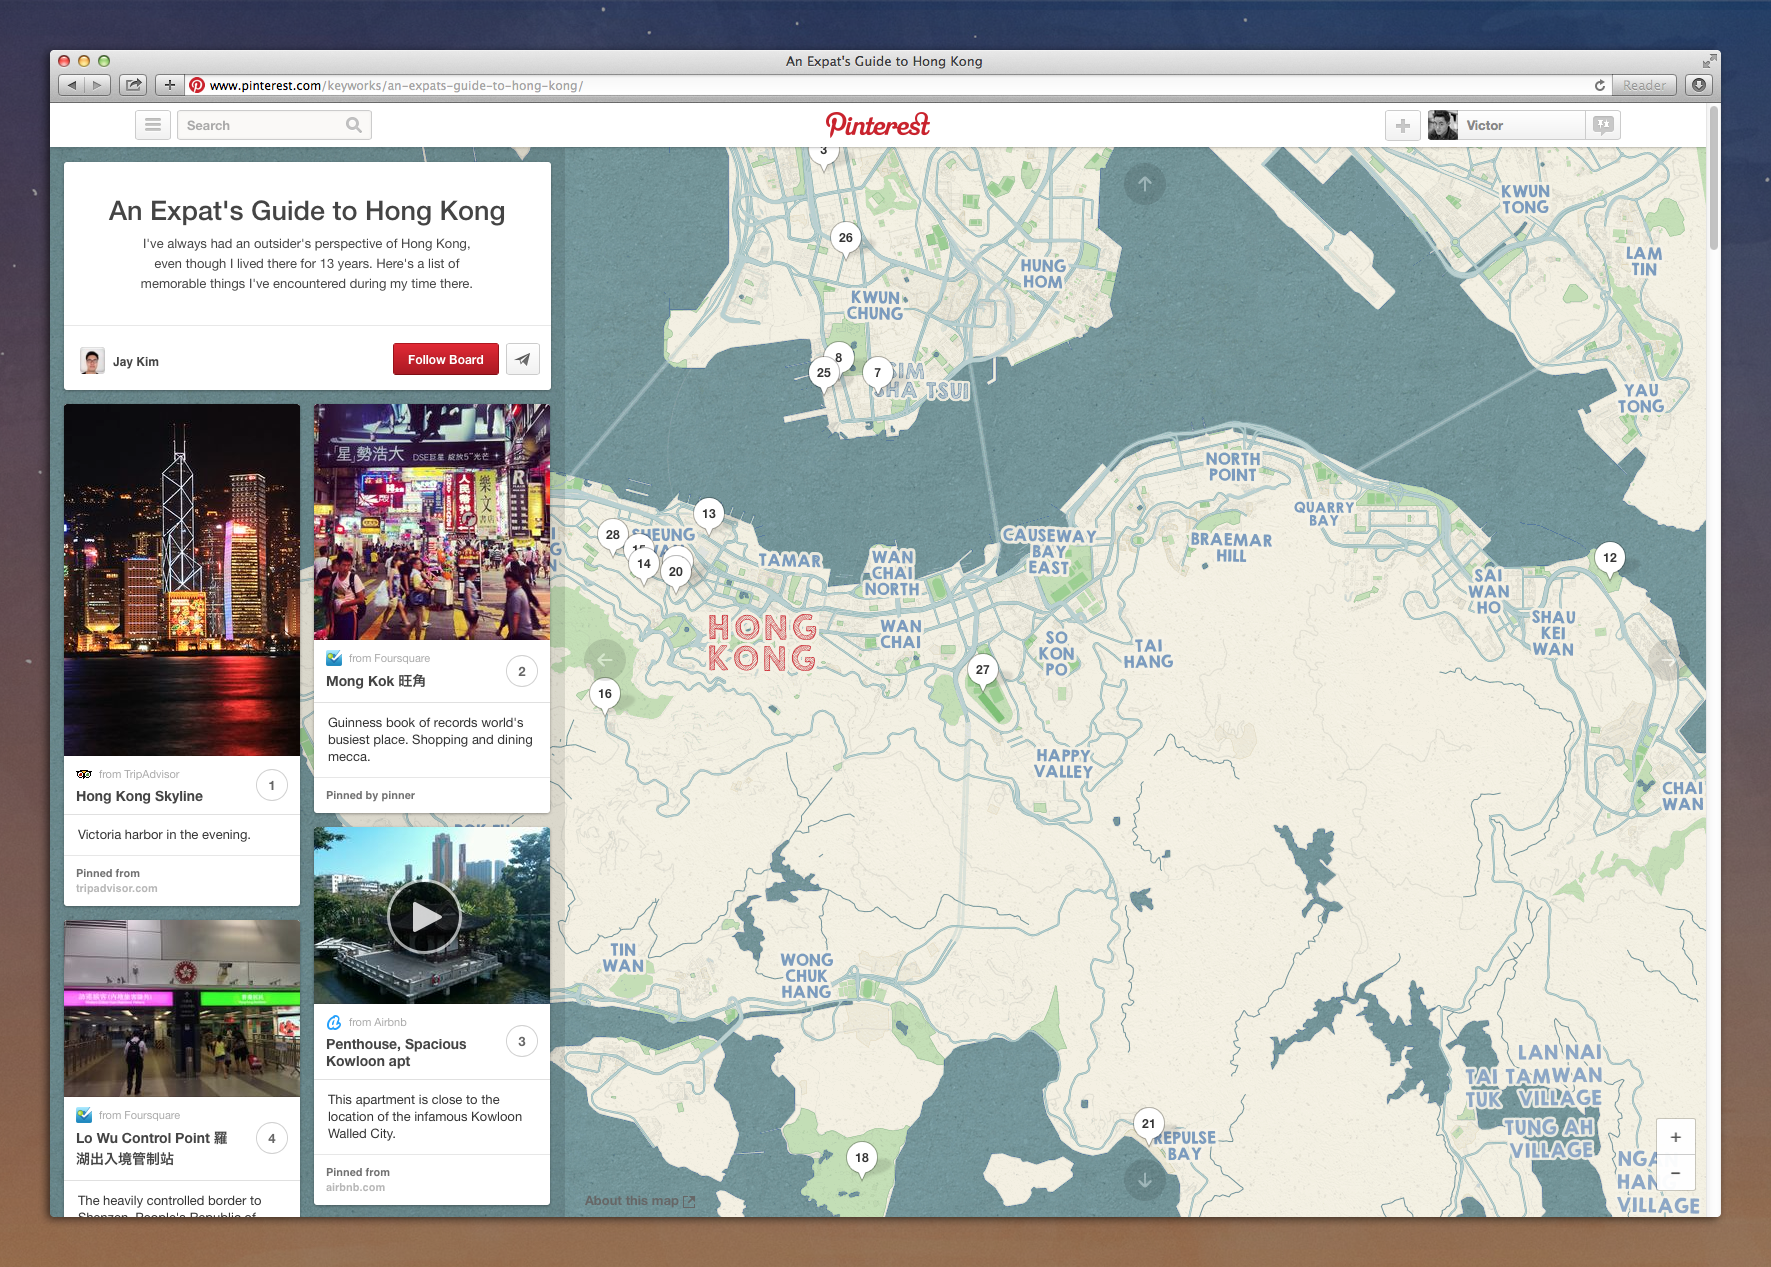 Place Pins Web Pinterest moves into travel after launching new tools to help users plan trips